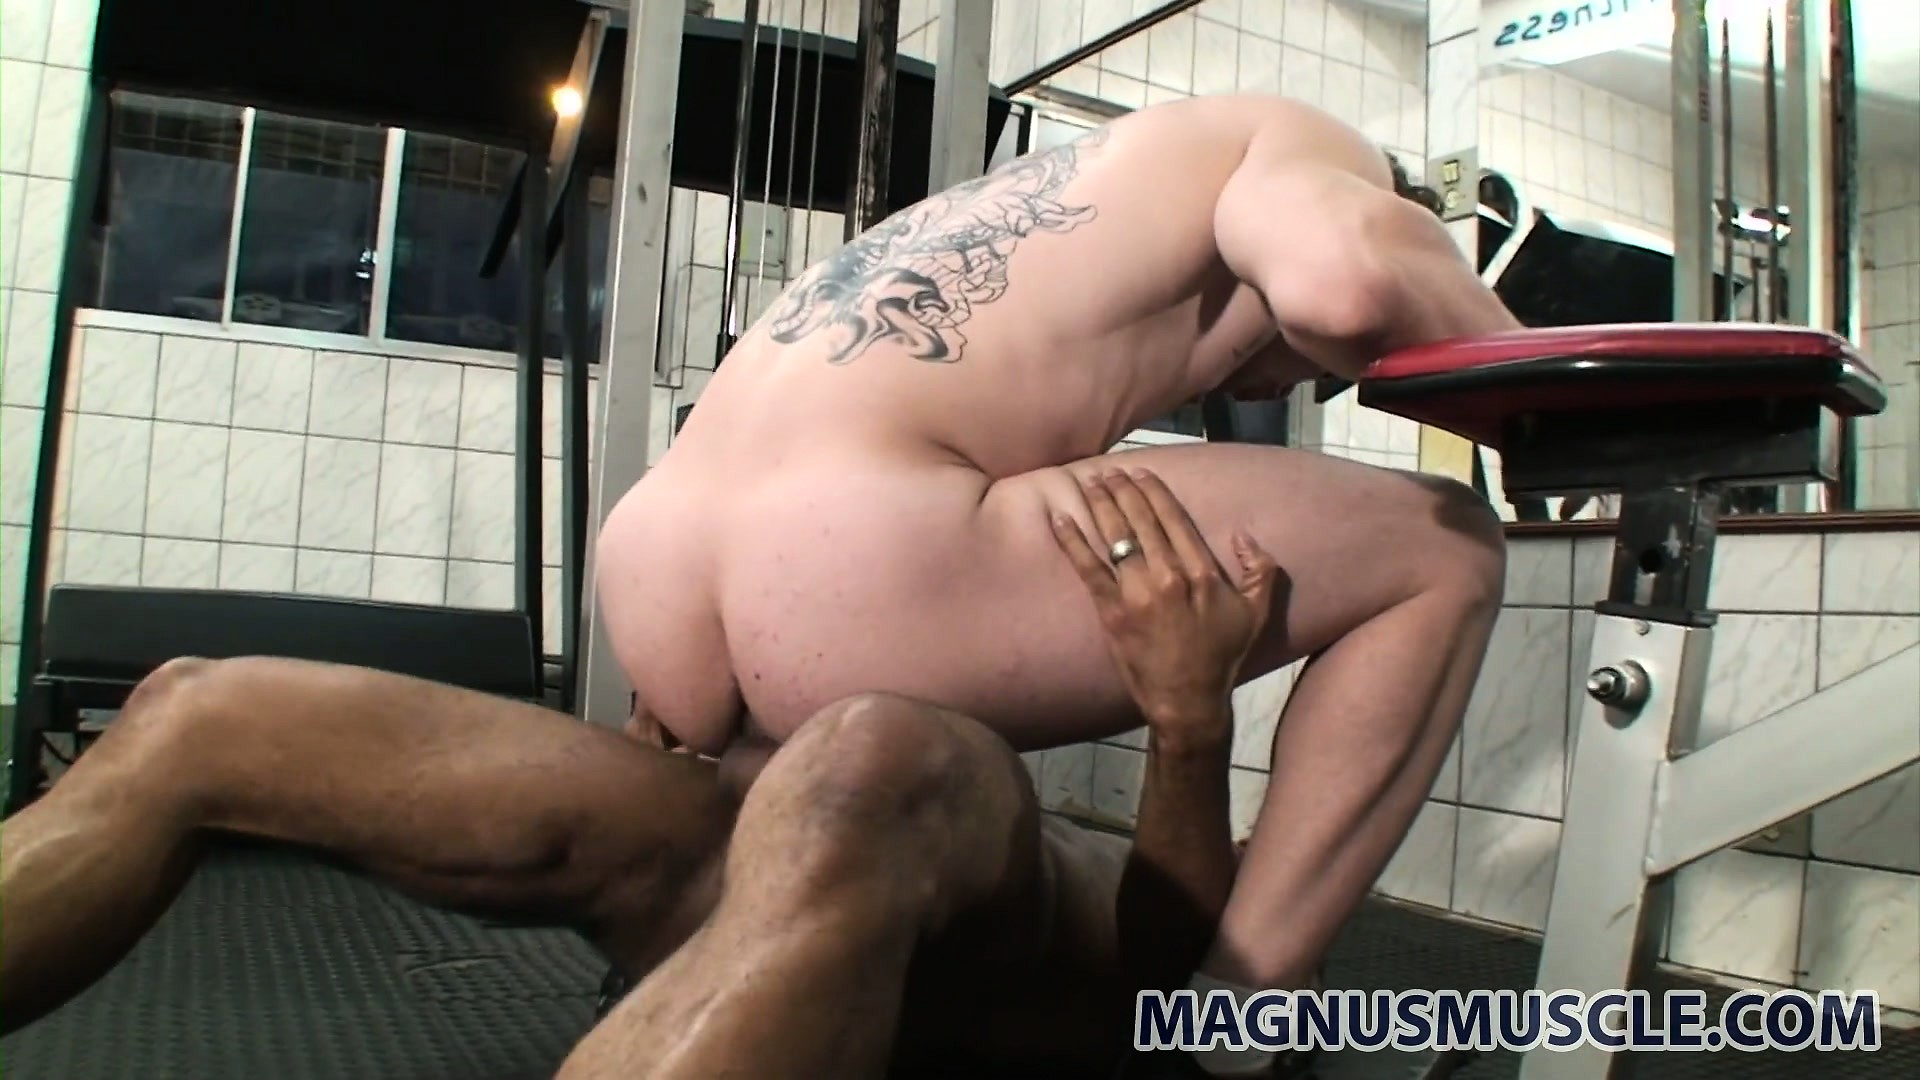 Porn Tube of Intense Black-on-white And Vice Versa Gay Fucking With Arcanjo And Jhonathan